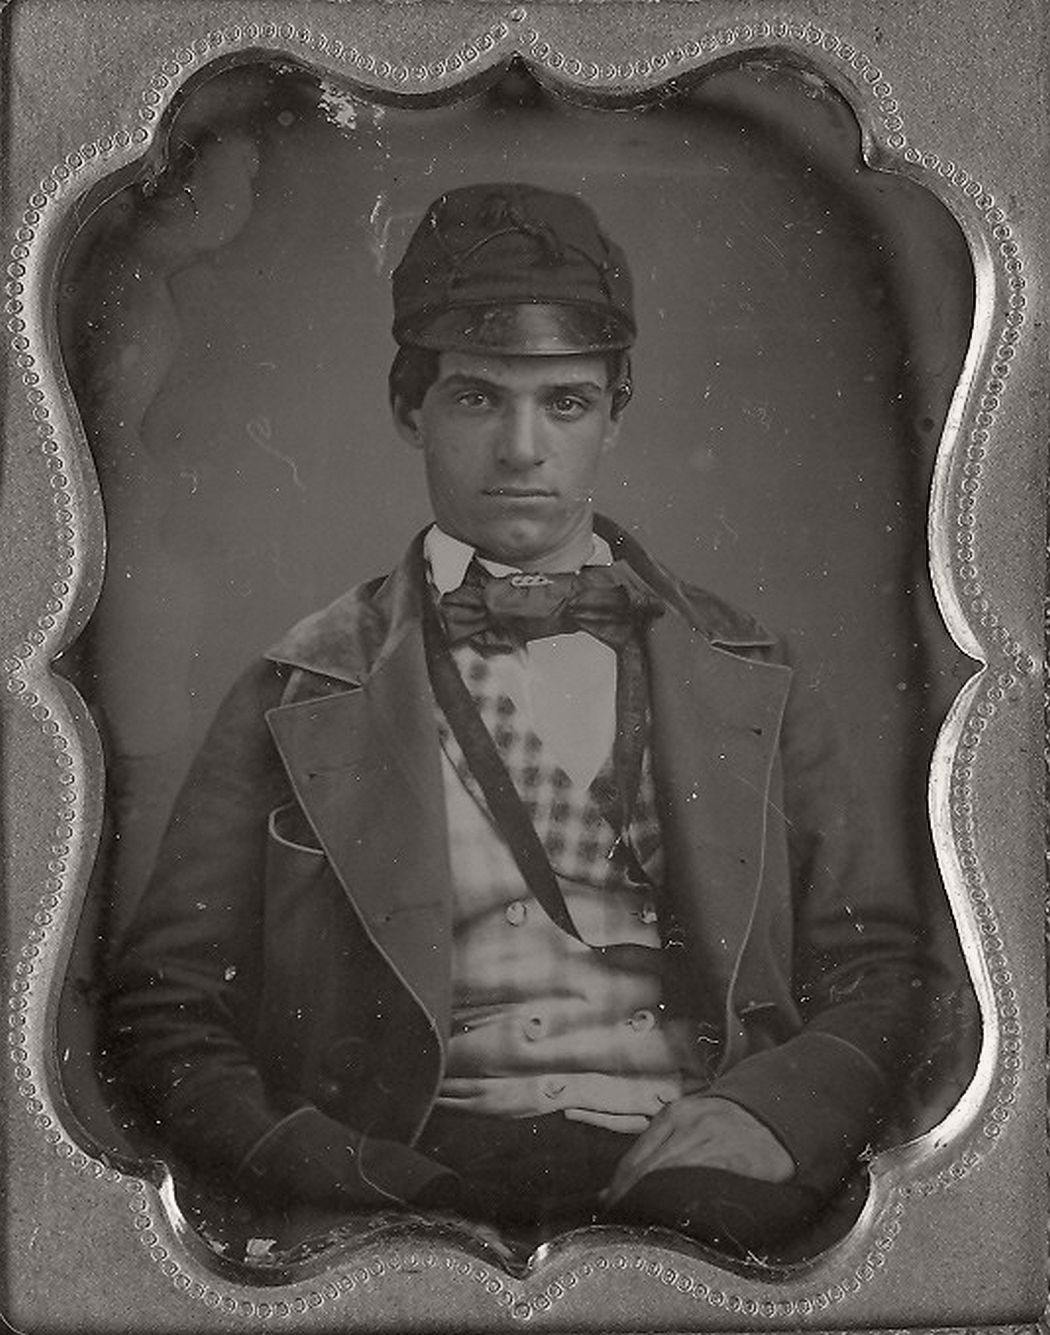 victorian-era-daguerreotype-of-men-in-hat-1850s-xix-century-08